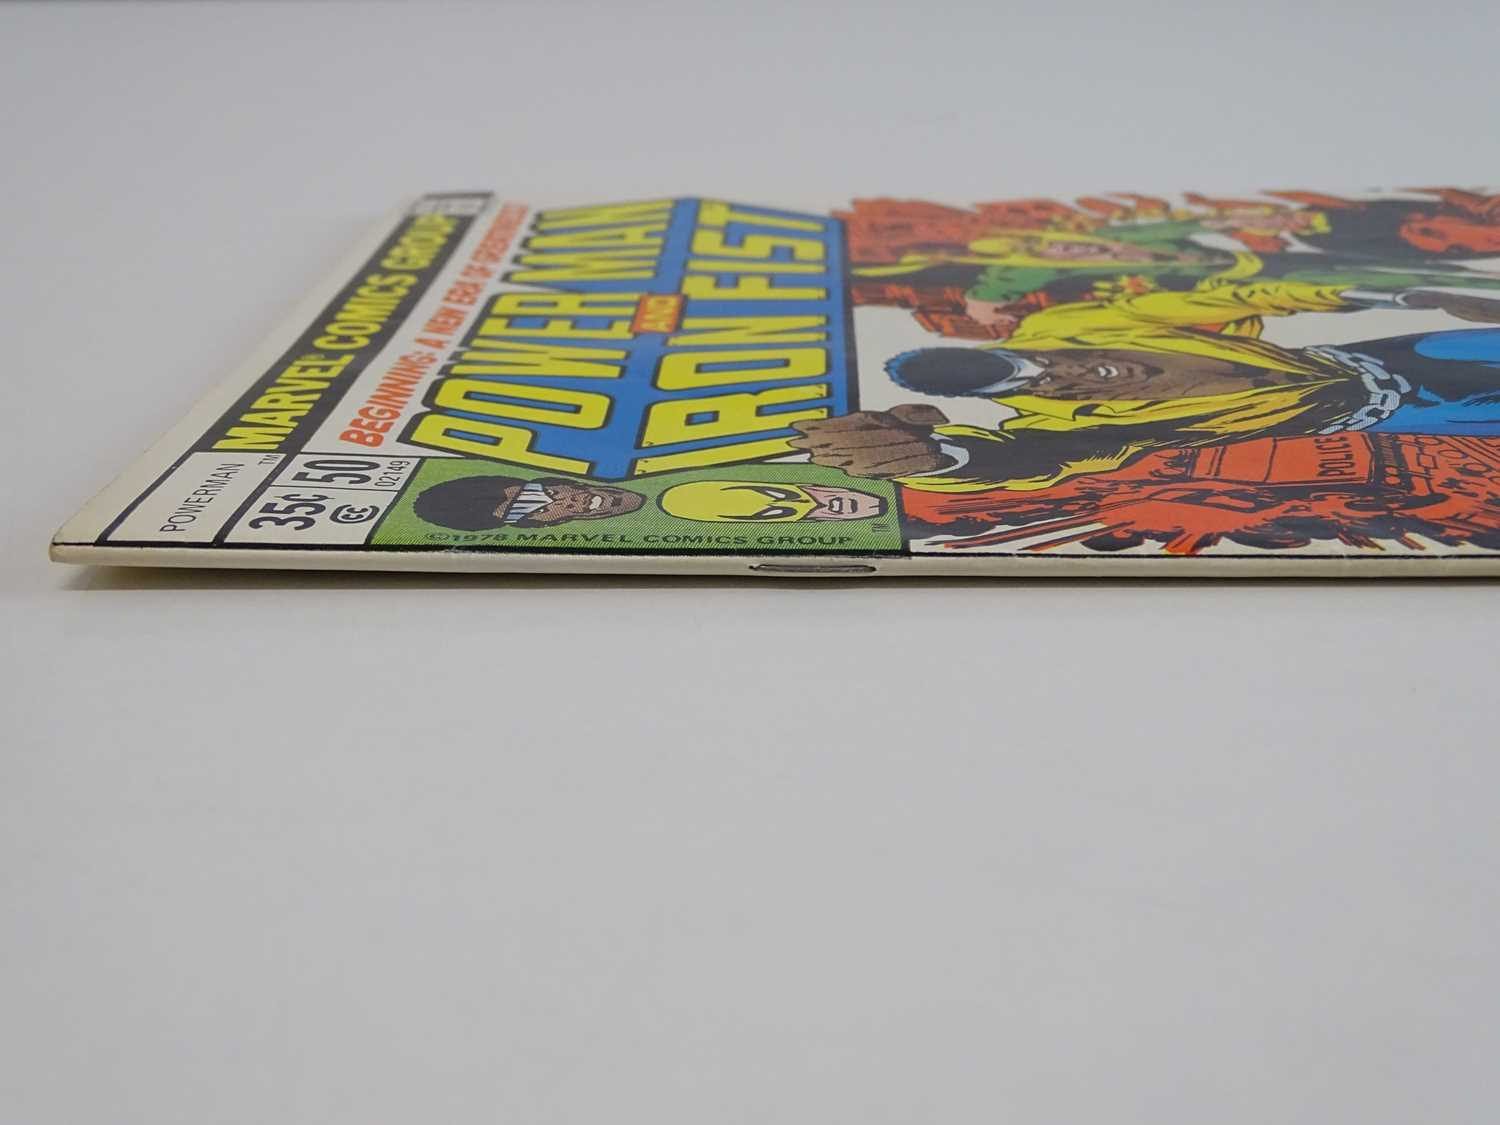 POWER MAN & IRON FIST #50 - (1978 - MARVEL) First appearance of the Heroes For Hire + Title - Image 8 of 9